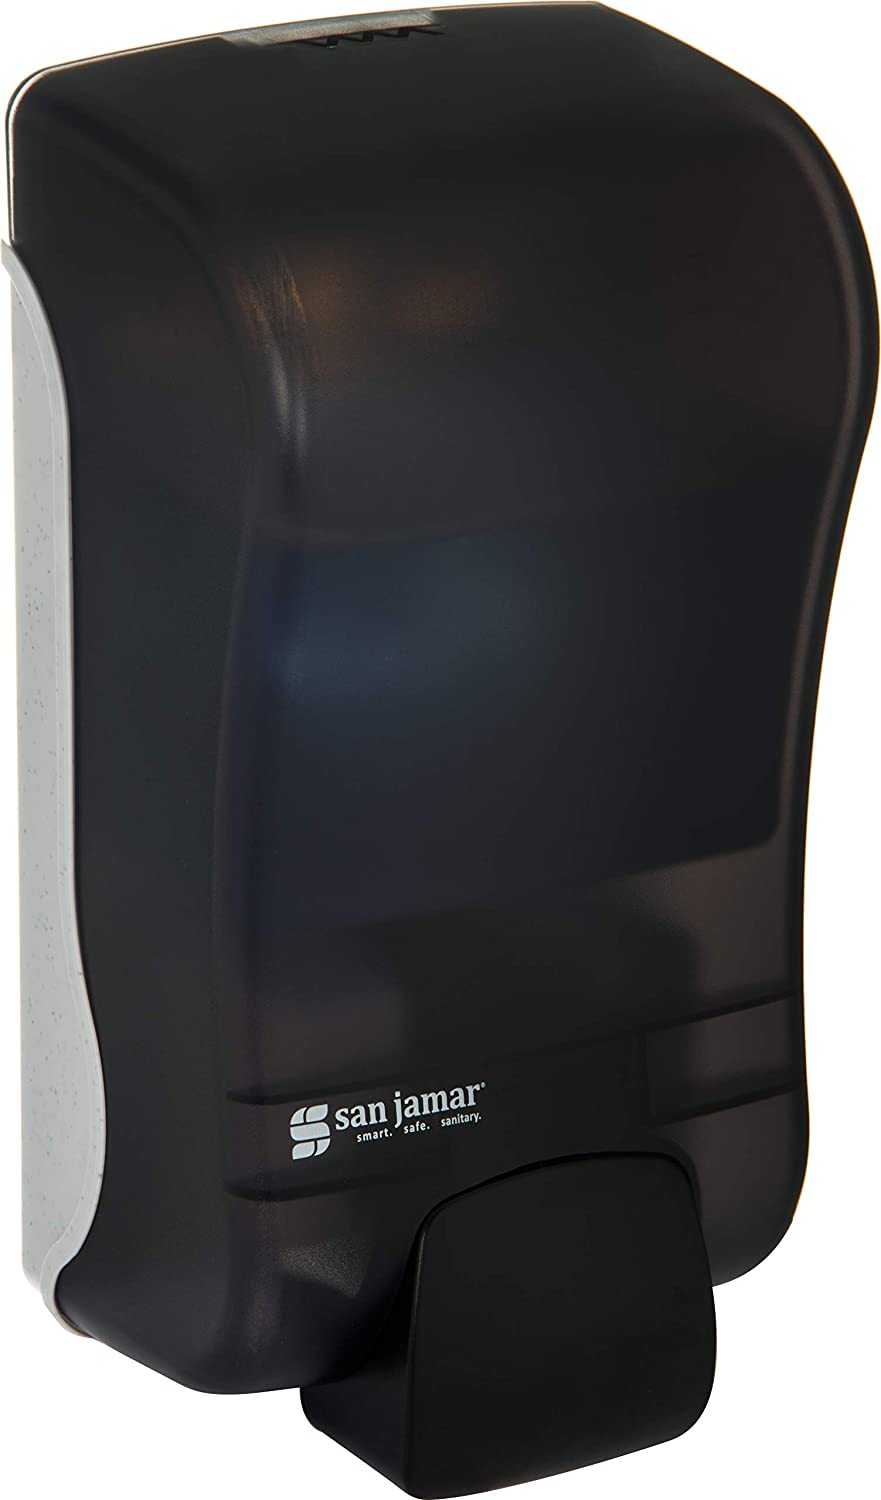 San Jamar SF1300TBK SF1300 Rely Manual Foam Soap Dispenser, 1300 mL, Black Pearl: Amazon.com: Industrial & Scientific